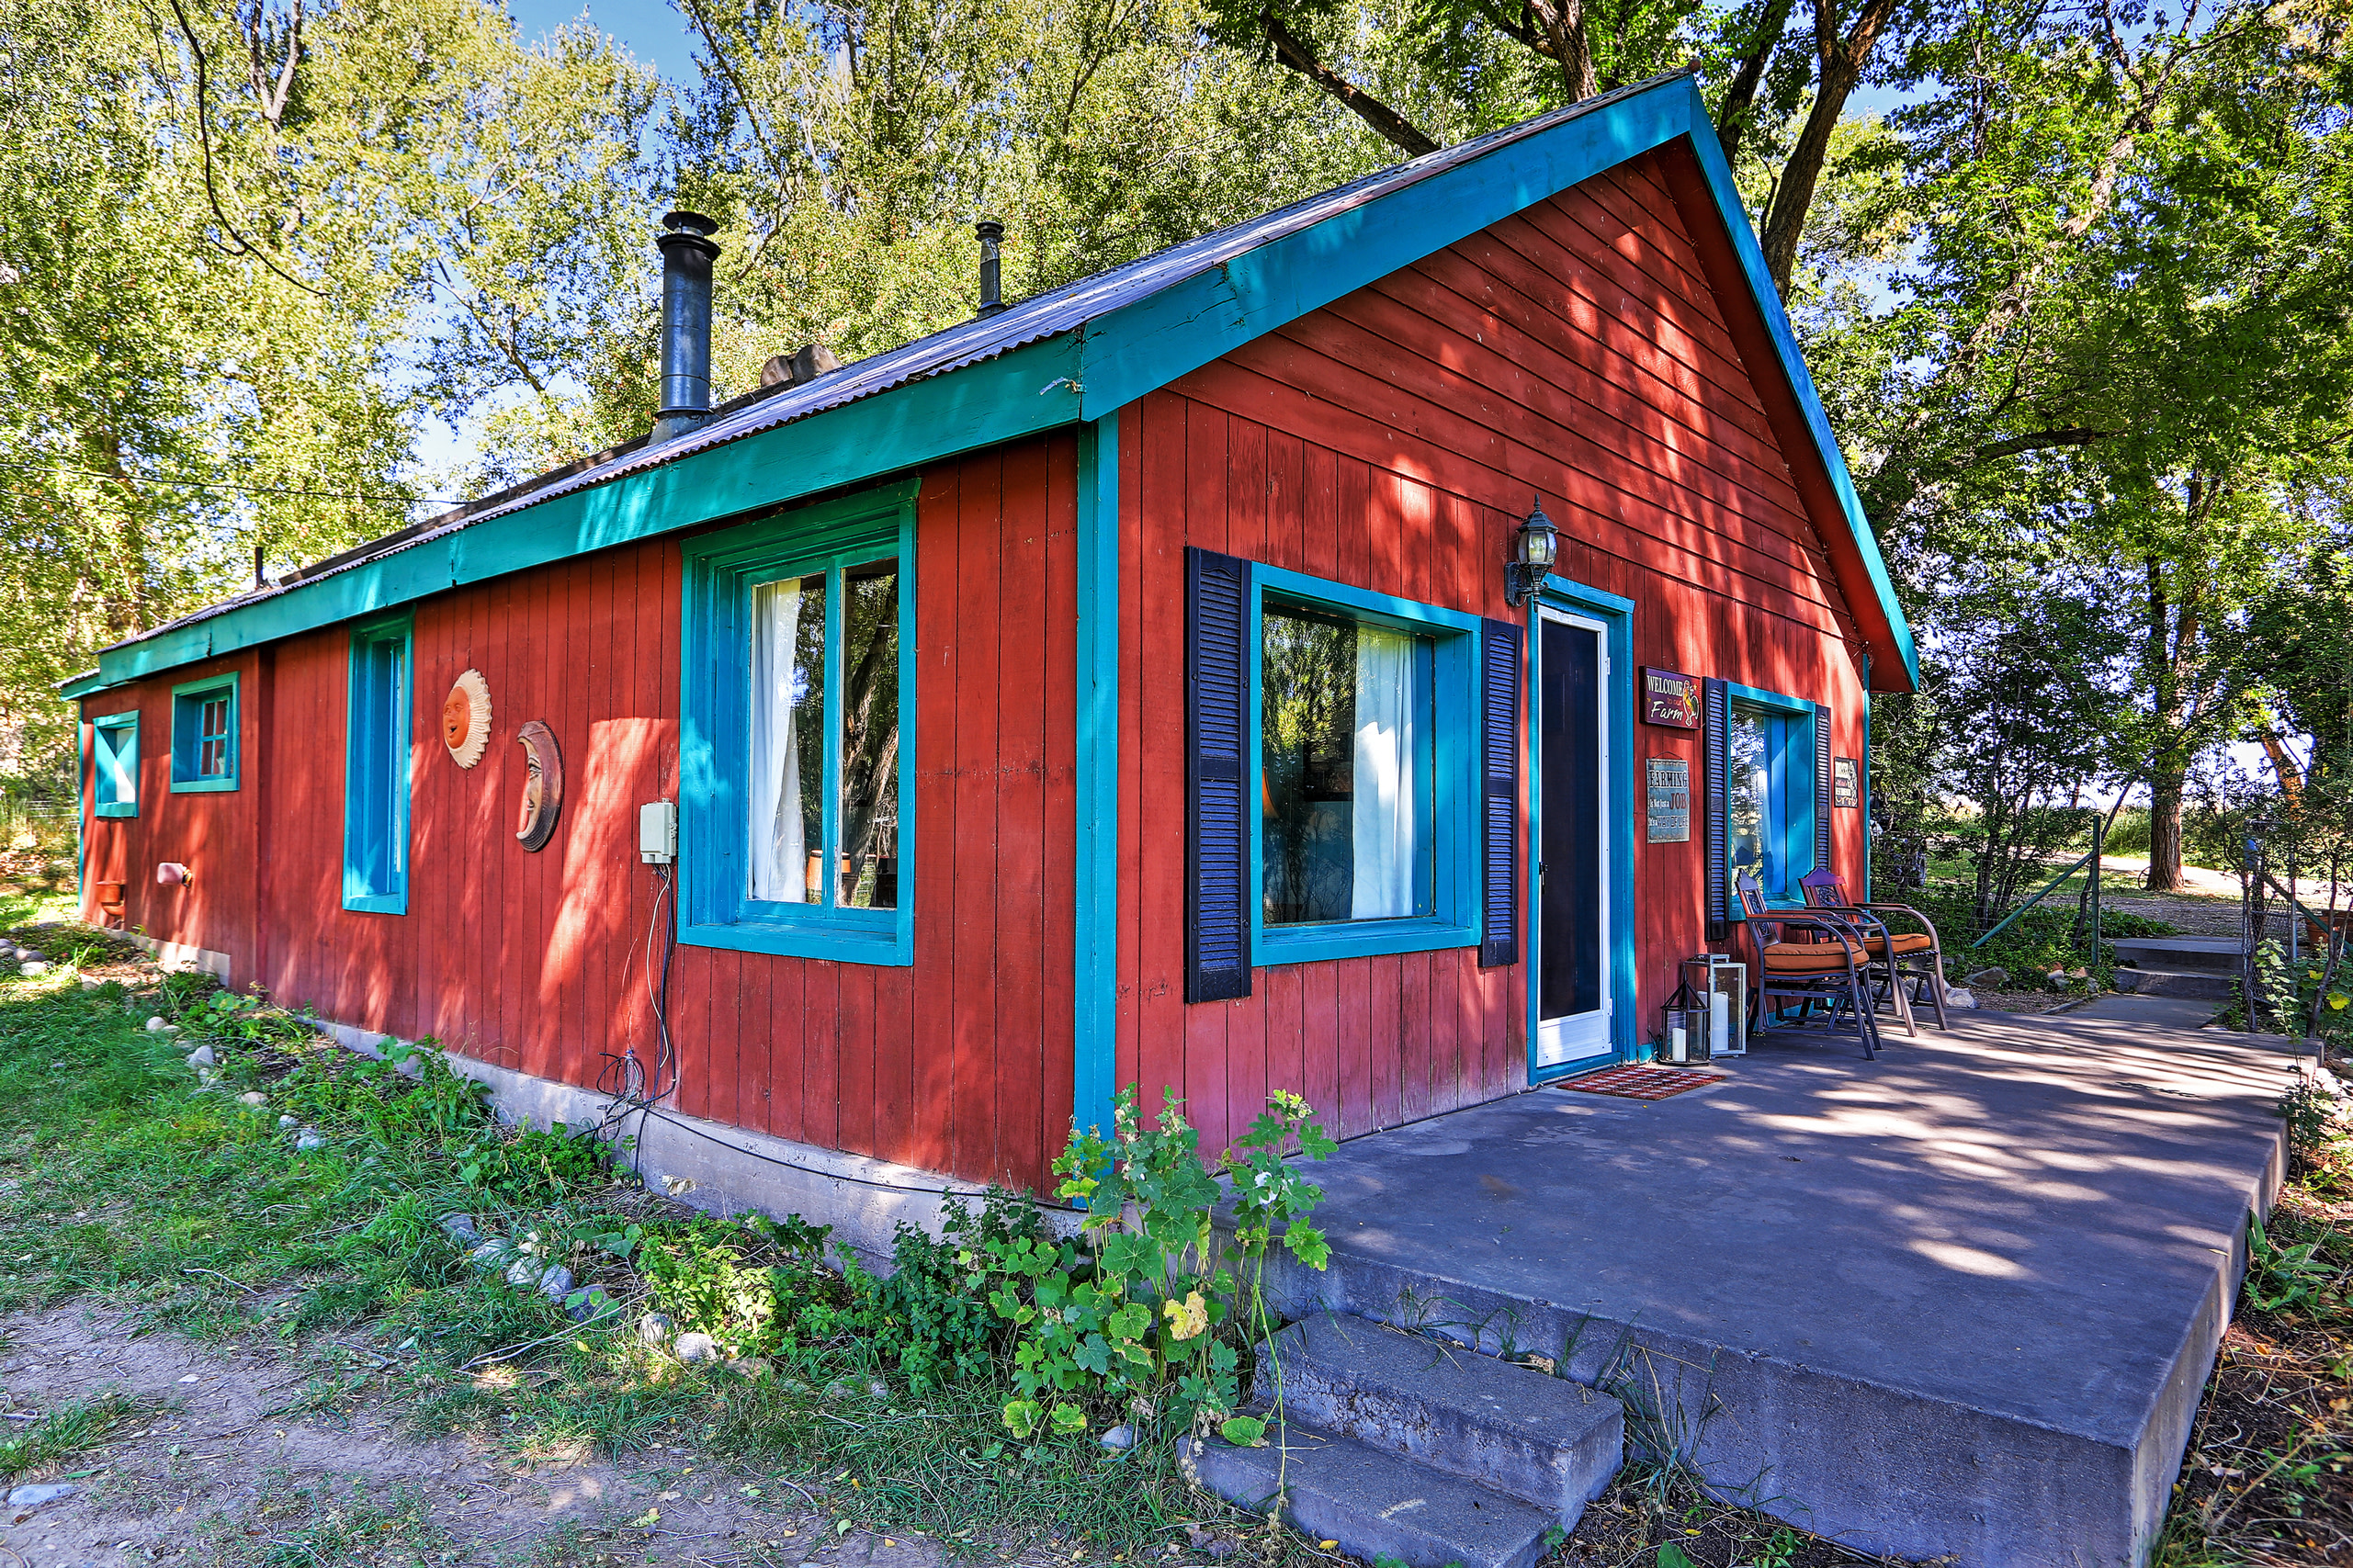 This quaint Durango vacation rental house is perfect for a restful escape.